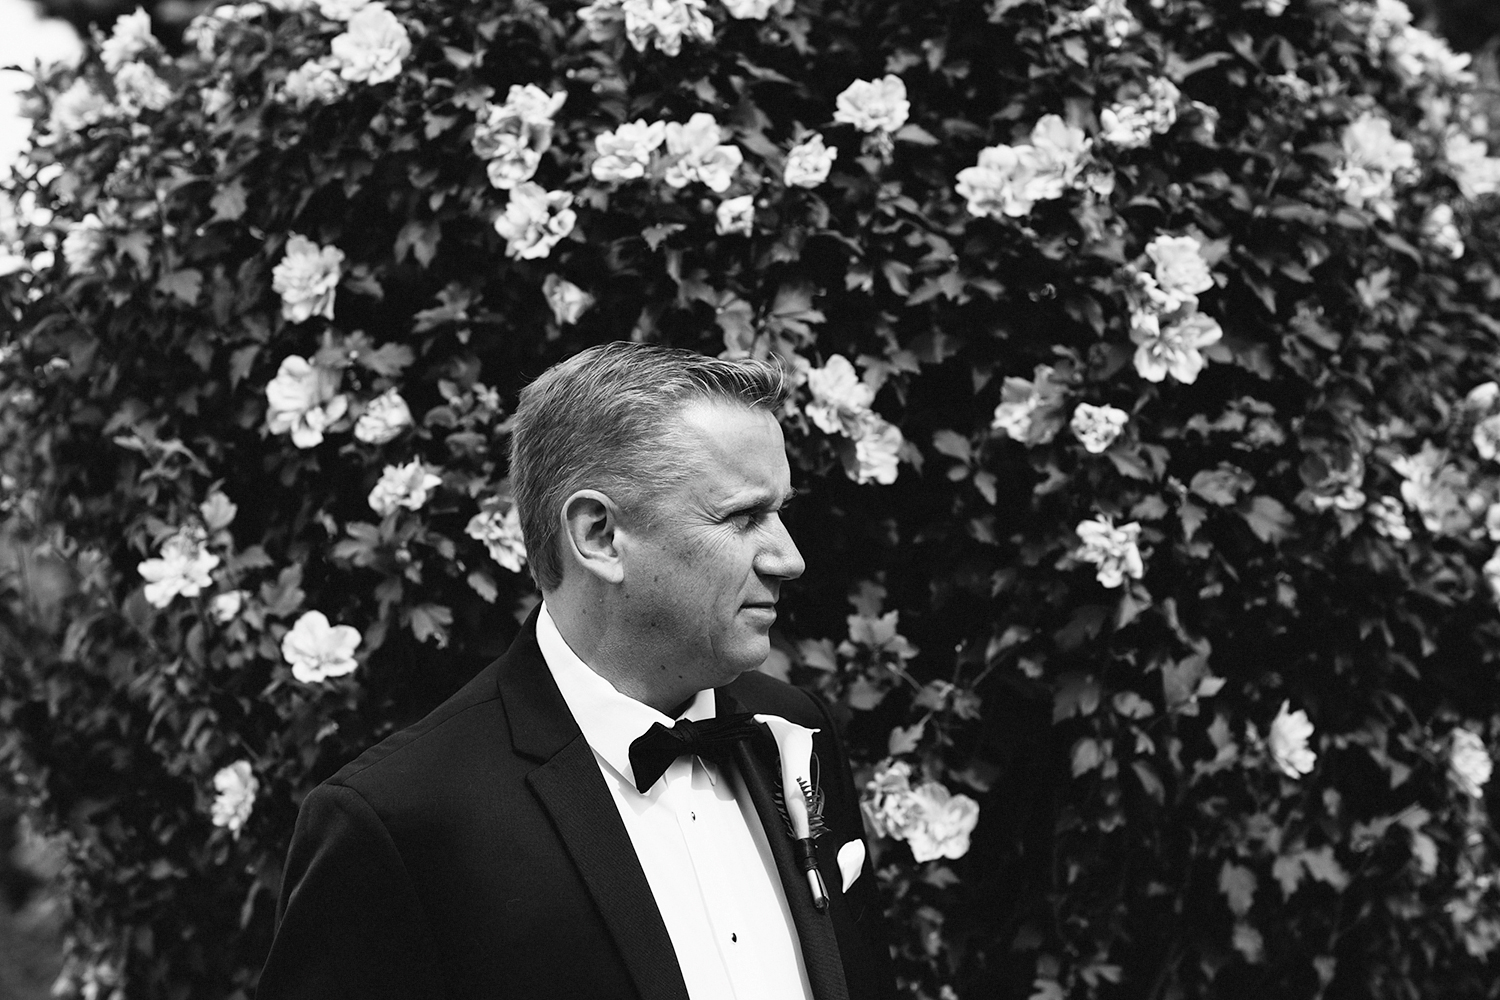 Niagara-on-the-Lake-Wedding-Photographers-Best-in-Toronto-Port-Dalhousie-curling-club-venue-mature-couple-wedding-inspiration-airbnb-groom-getting-ready-portrait-in-tuxedo-artistic-minimalist.jpg